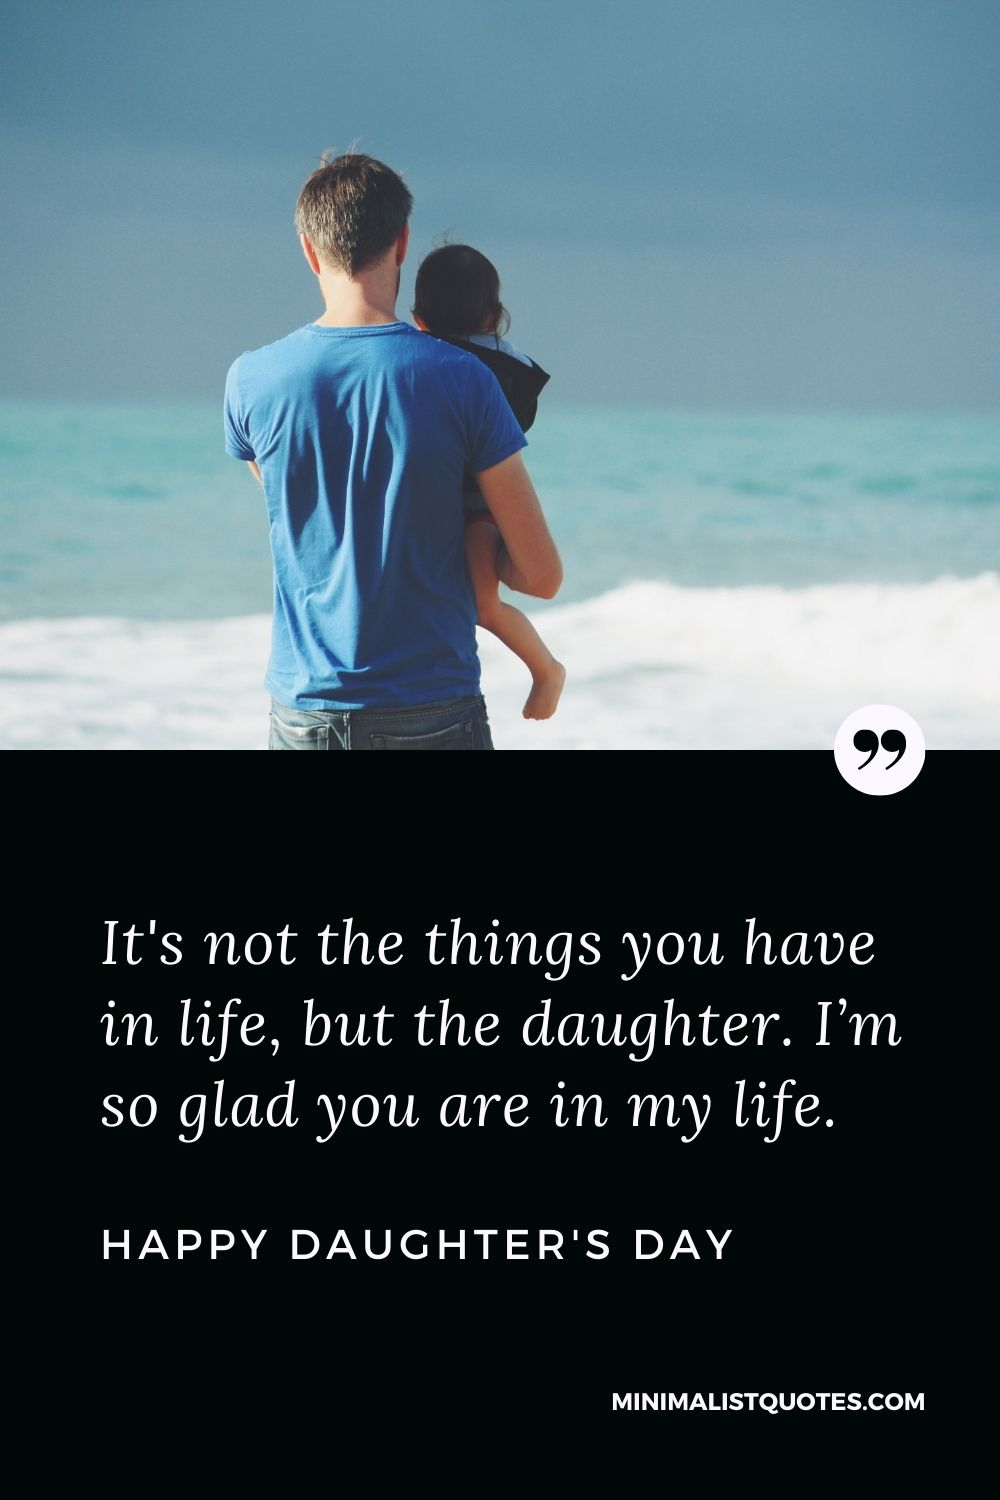 Daughter's Day Wish, Quote & Message With Image: It's not the things you have in life, but the daughter. I'm so glad you are in my life. Happy Daughter's Day!